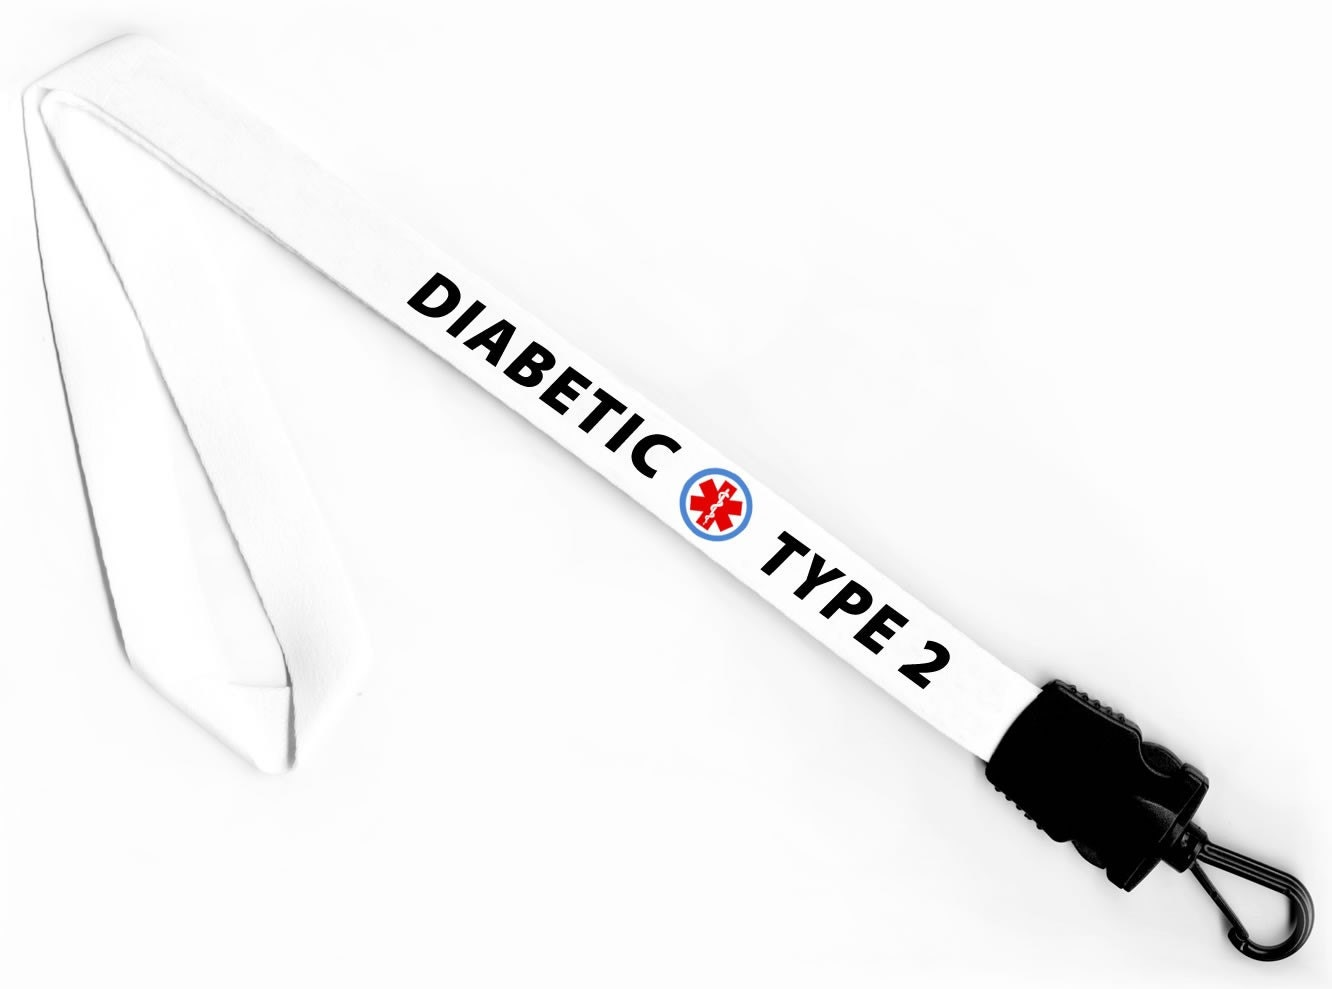 other names for type 2 diabetes